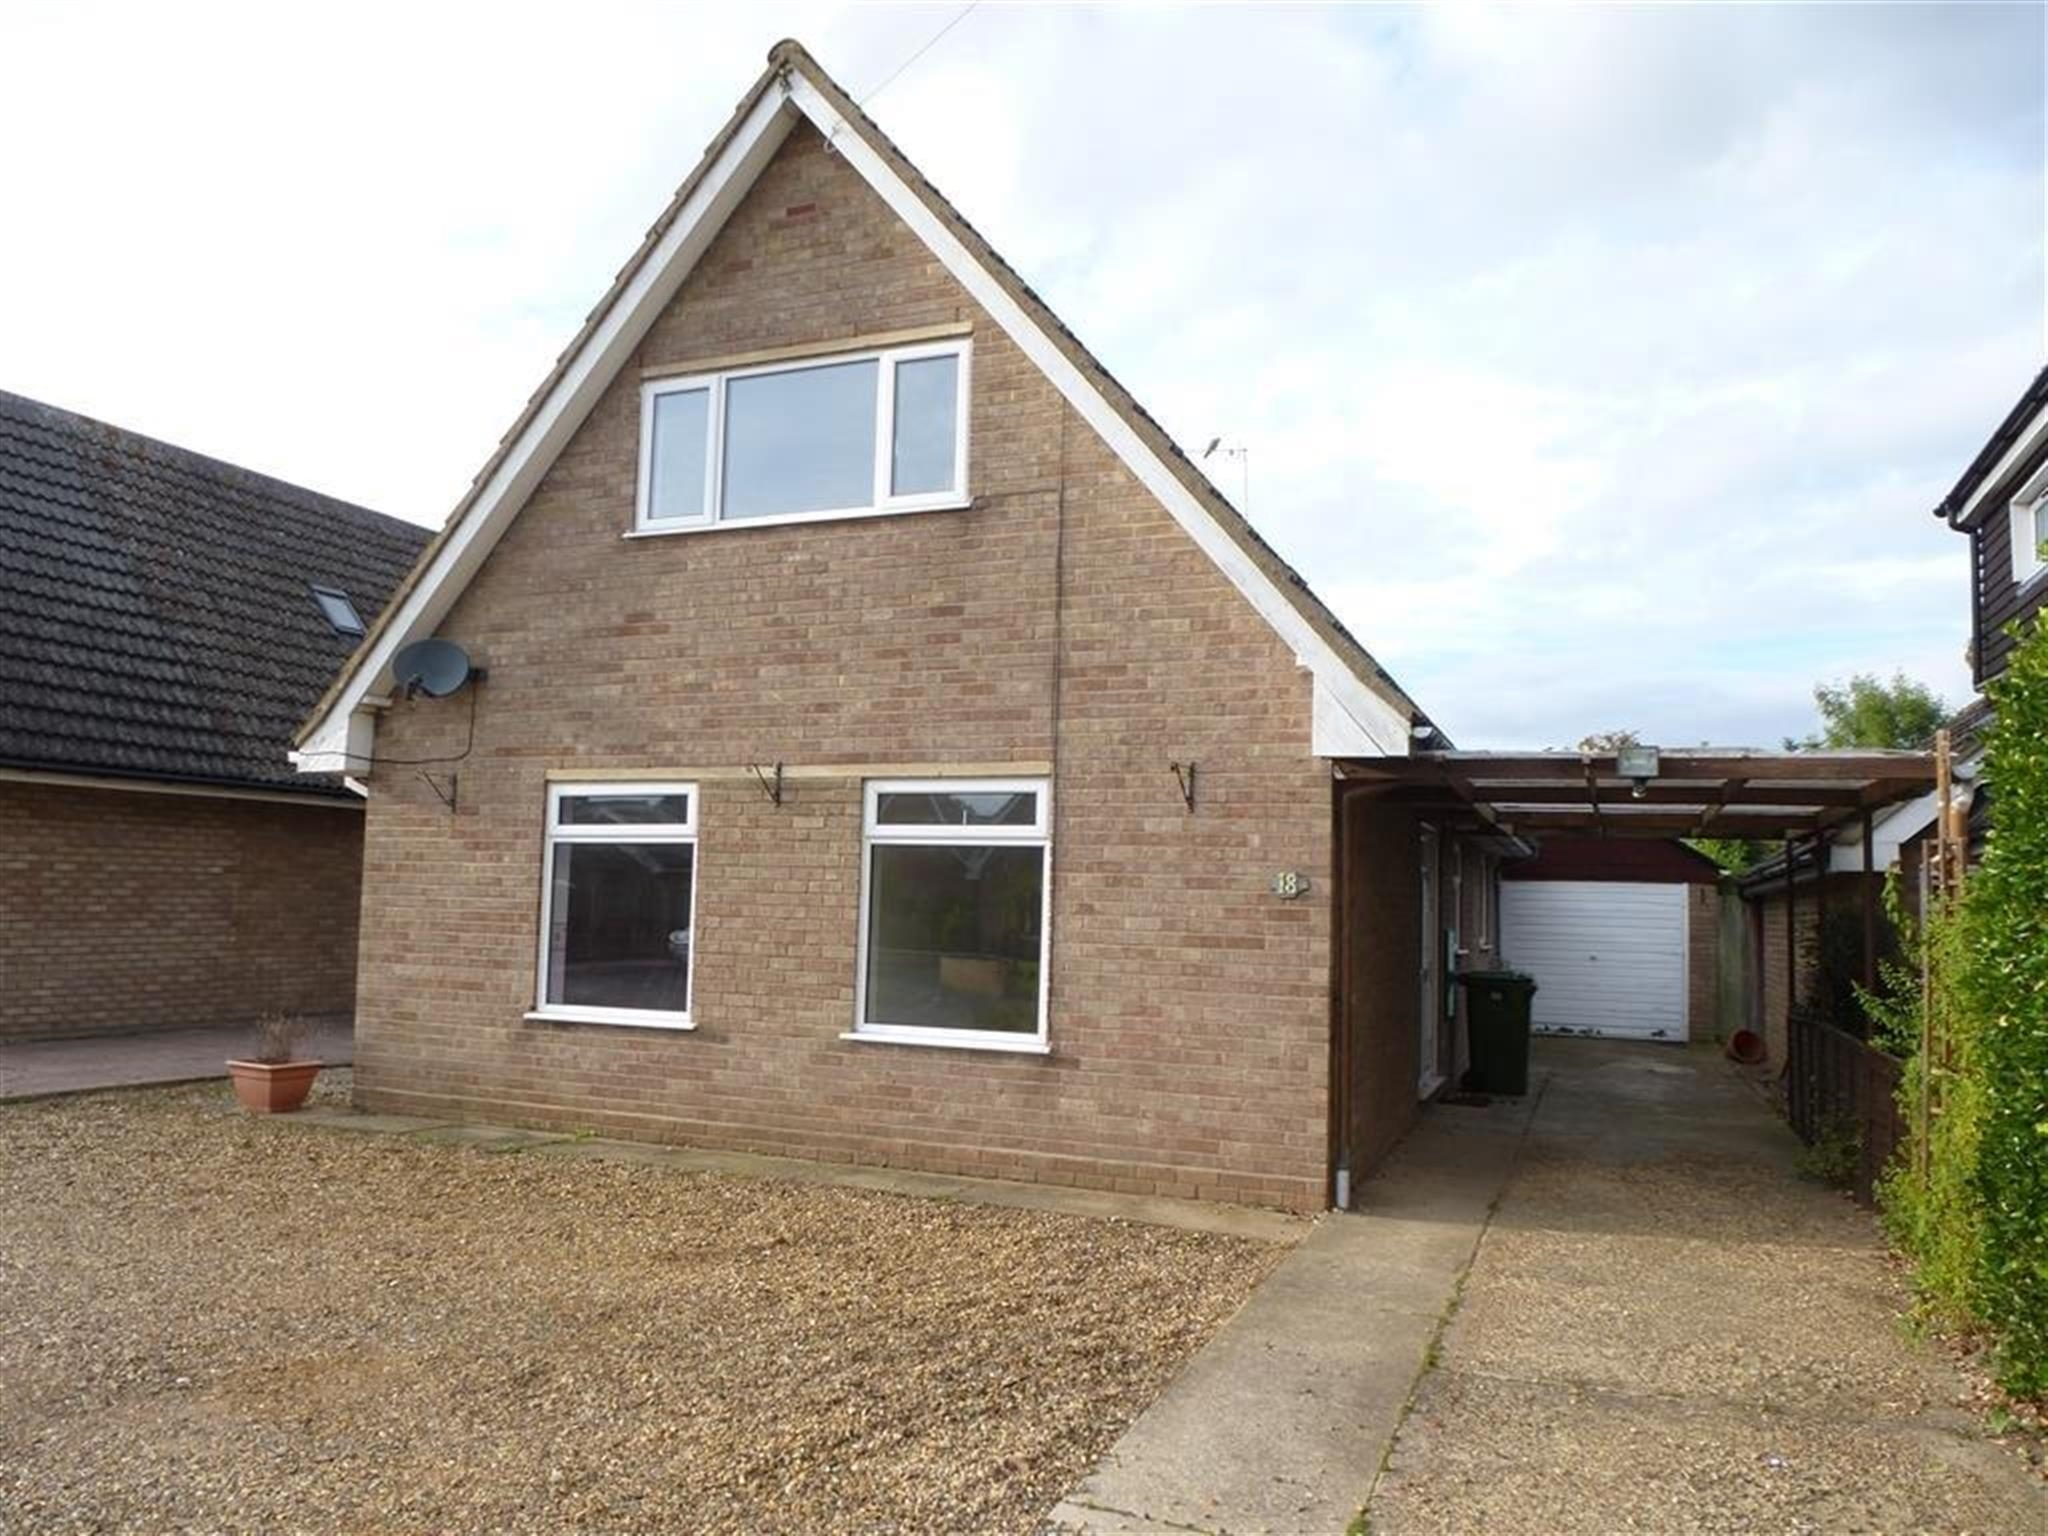 Detached Properties For Sale At Great Yarmouth